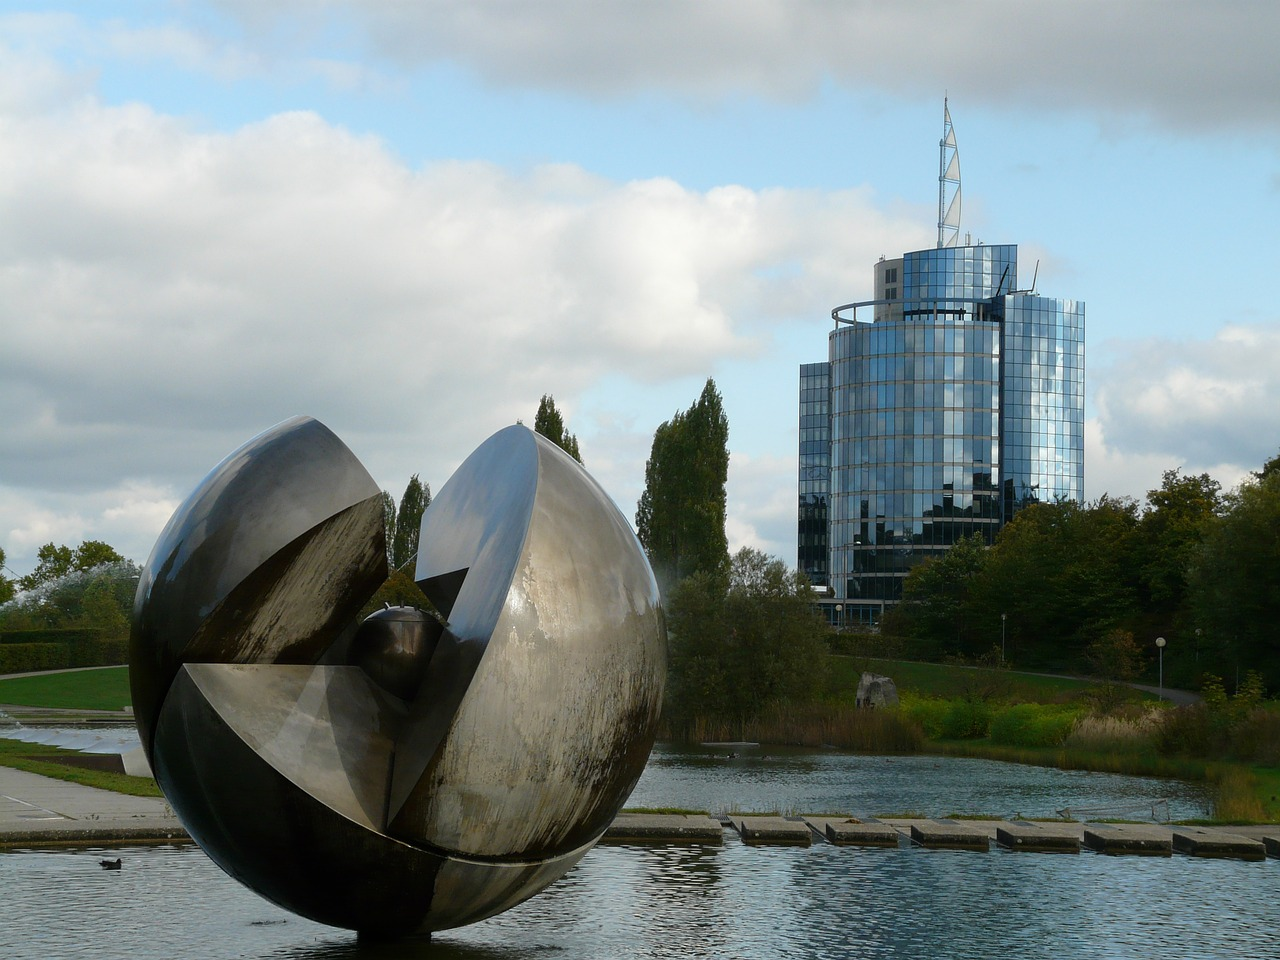 modern art,ball,fountain,water,stuttgart,rose stone park,english landschaftspark,landscape park,südwestdeutschland,leech lake,bülow tower,building,architecture,free pictures, free photos, free images, royalty free, free illustrations, public domain